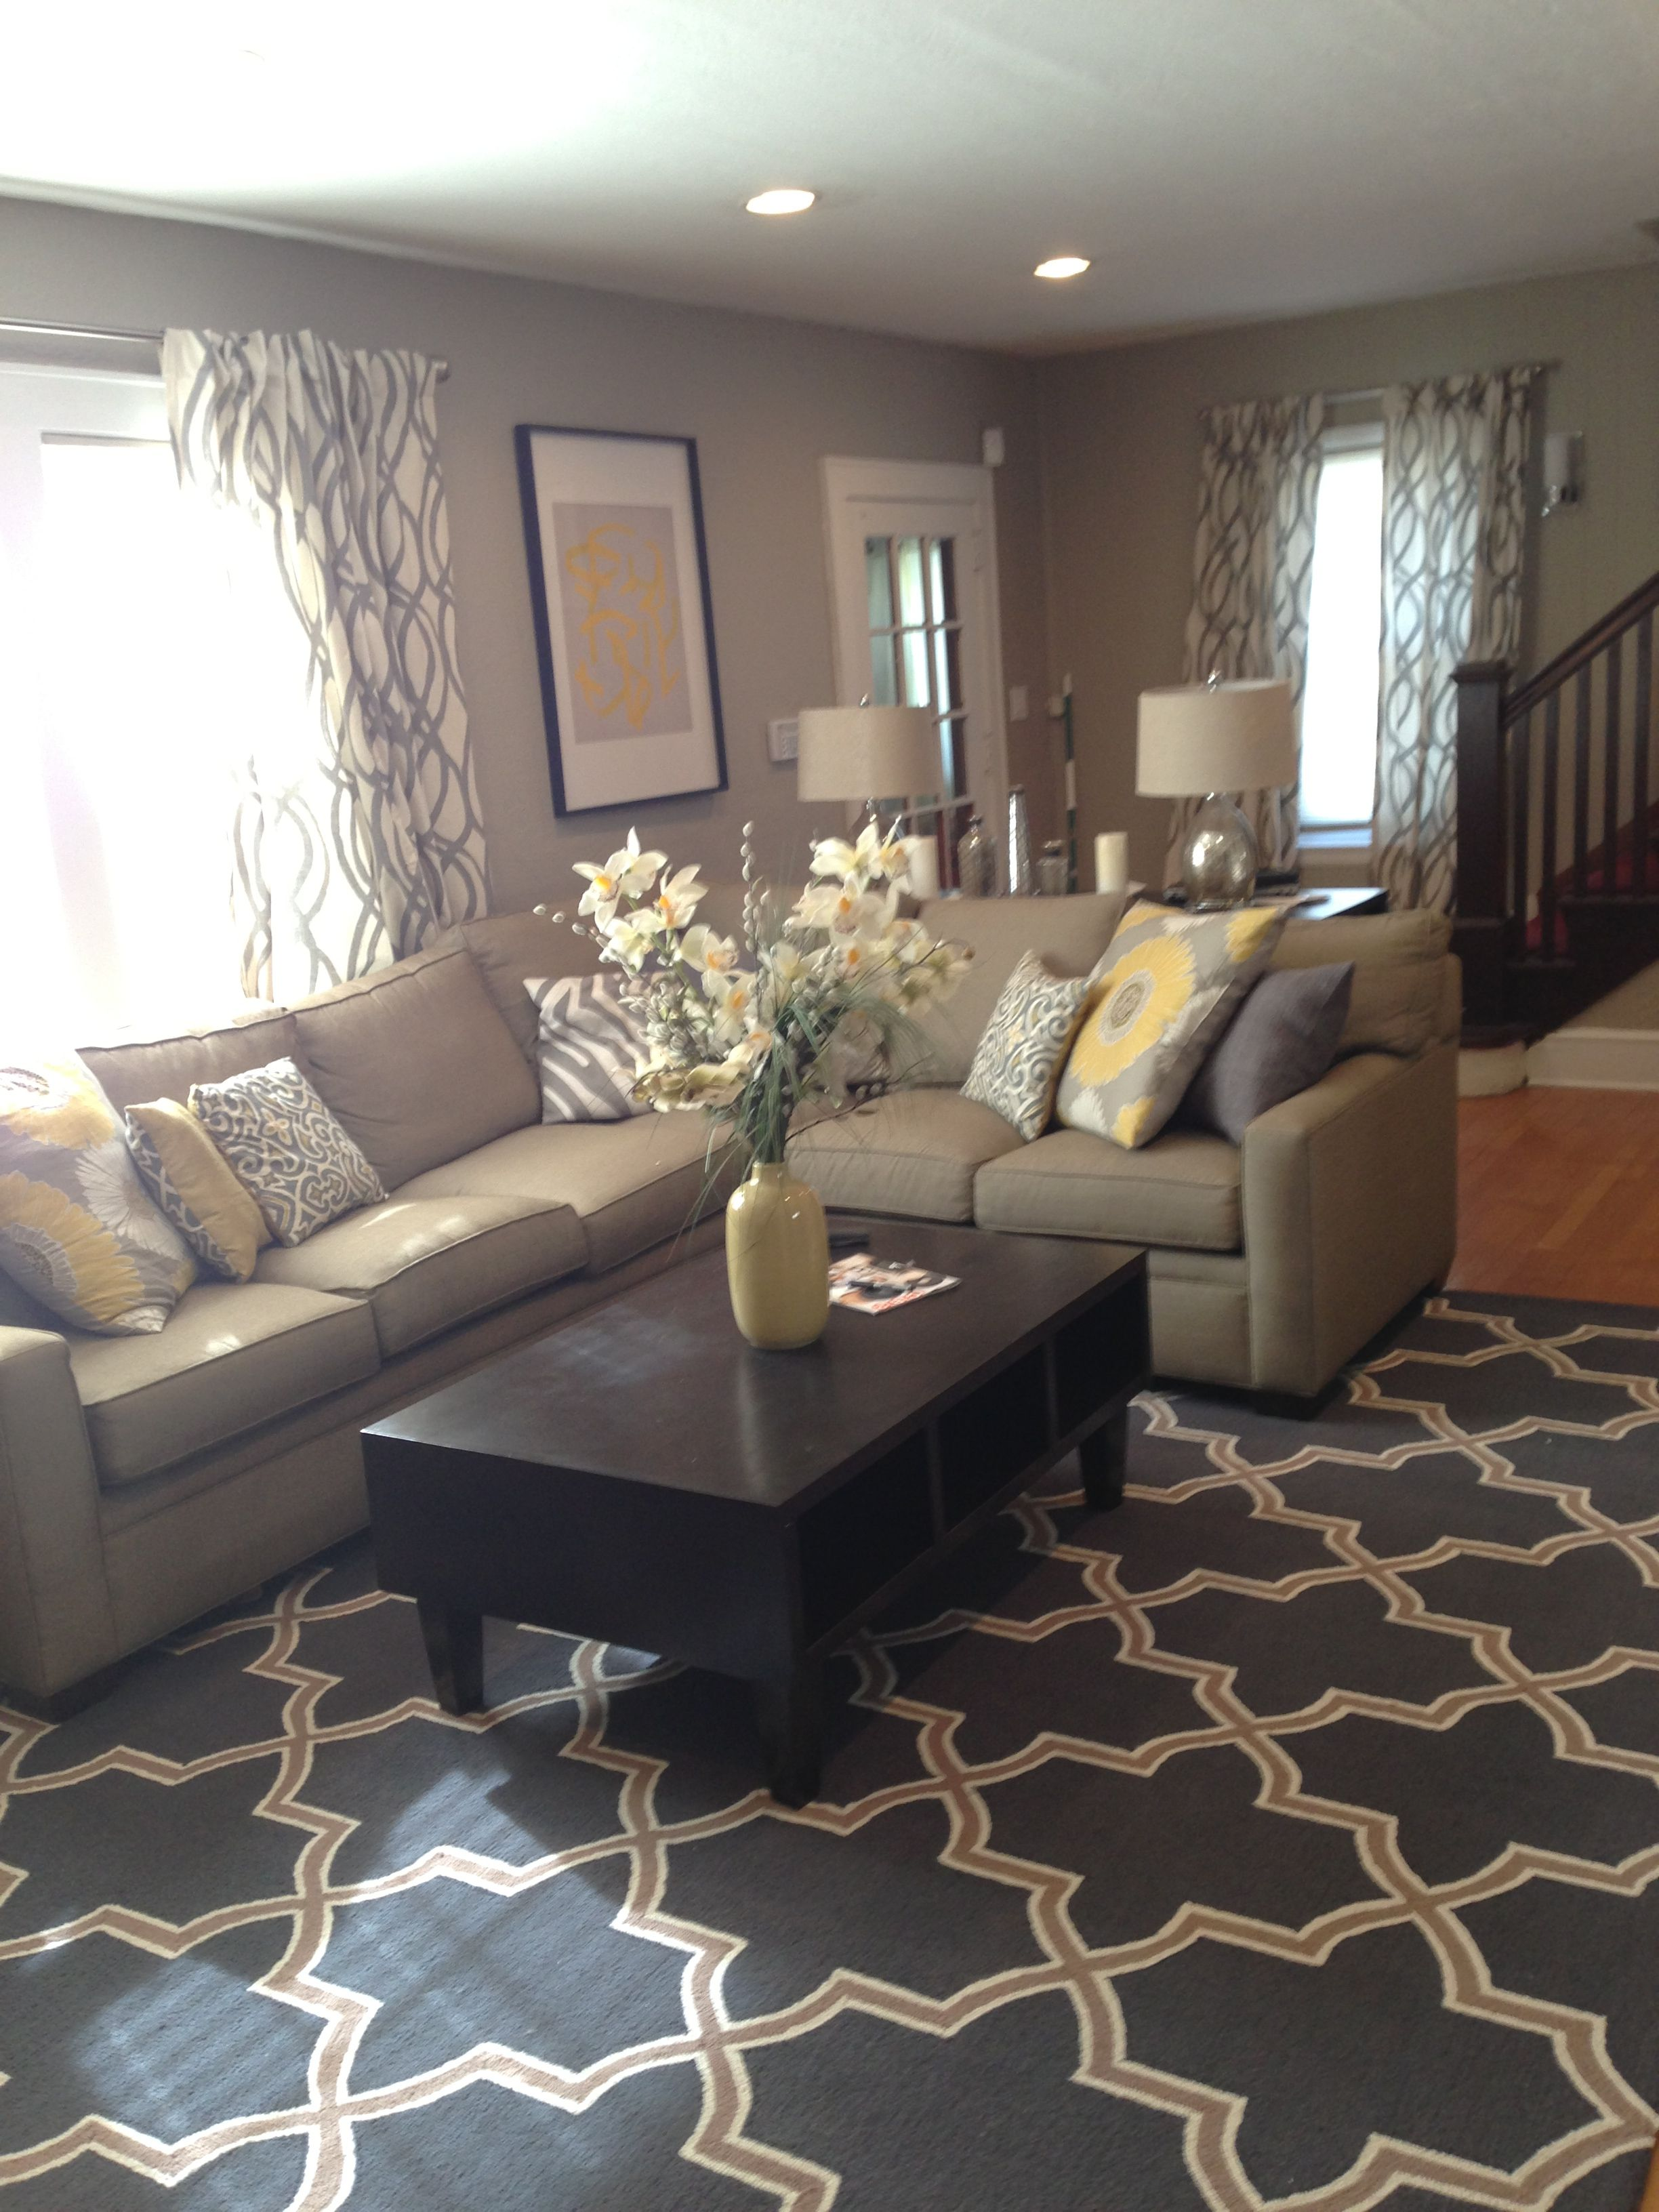 Phenomenal Living Room Brittany Schumaker This Lookings Like Your Machost Co Dining Chair Design Ideas Machostcouk